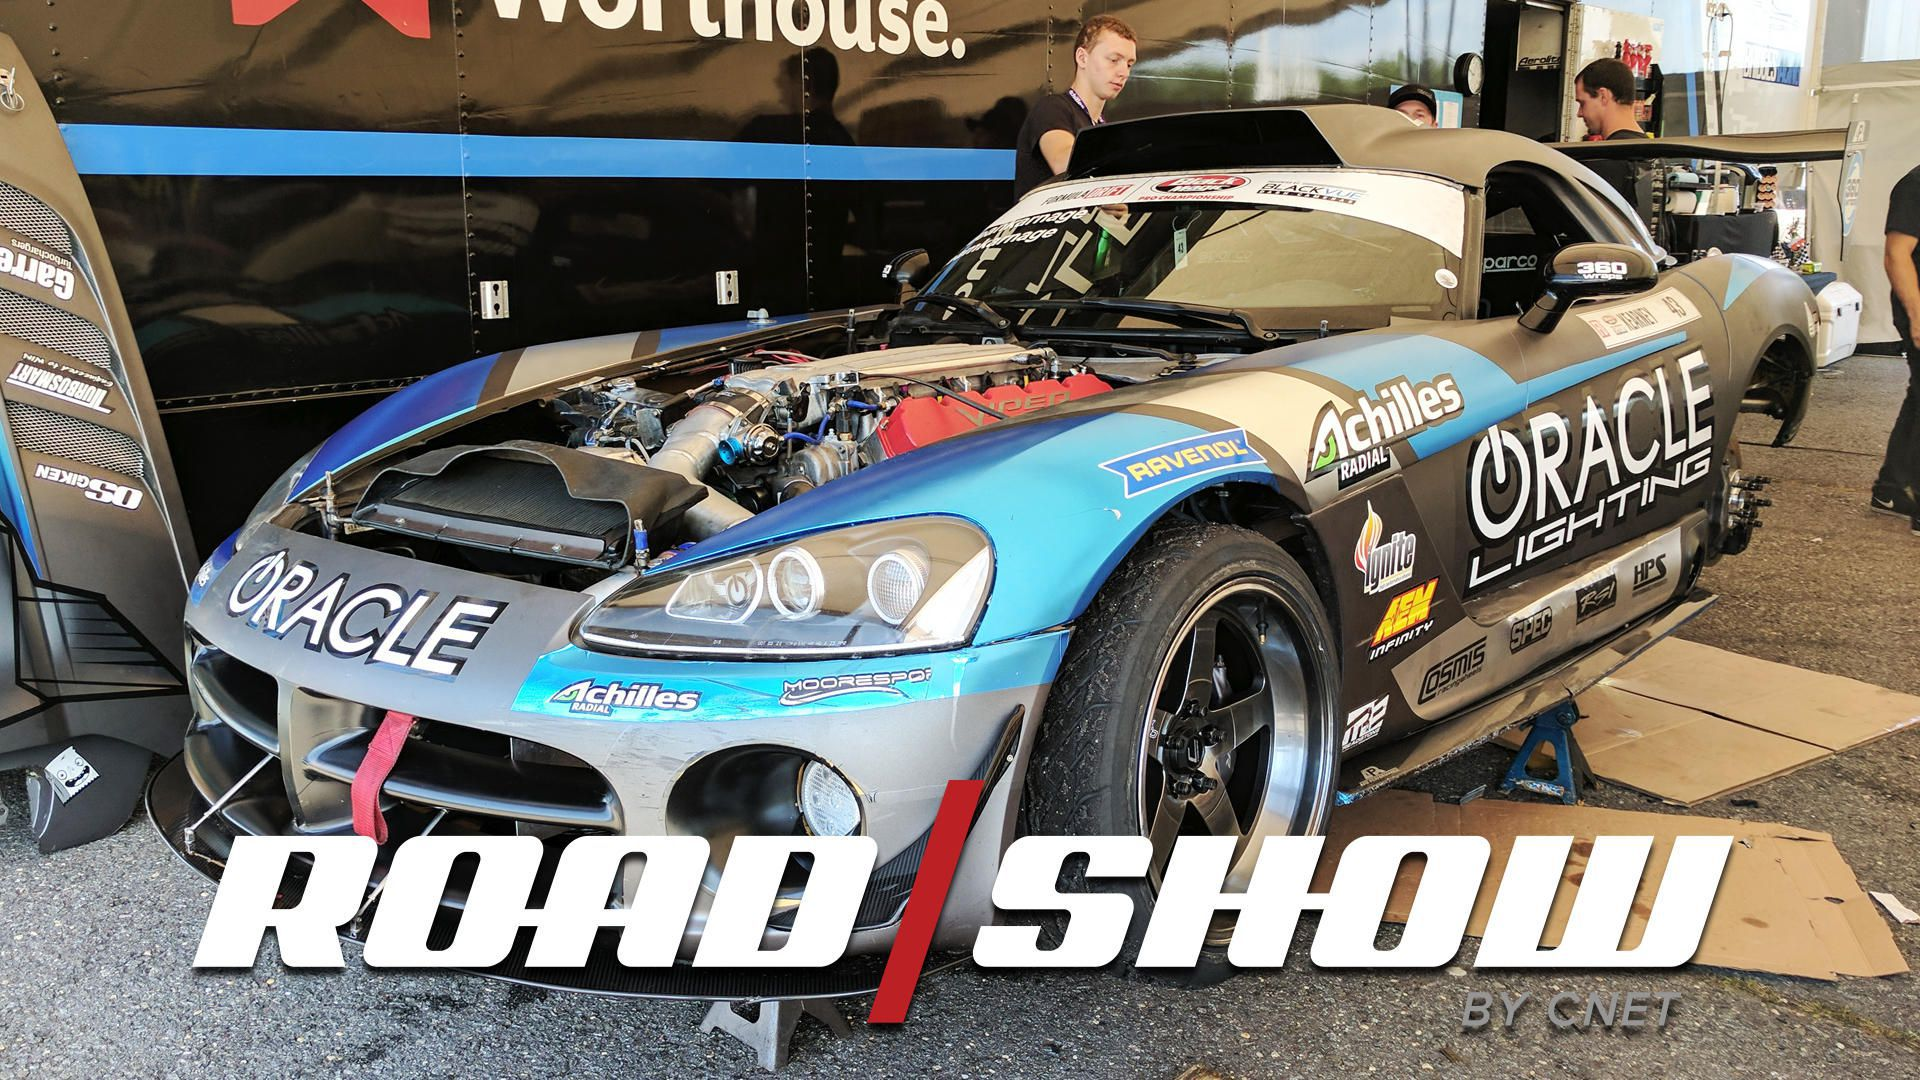 Dean Karnage Kearney drifts this 1,150 HP supercharged Dodge Viper